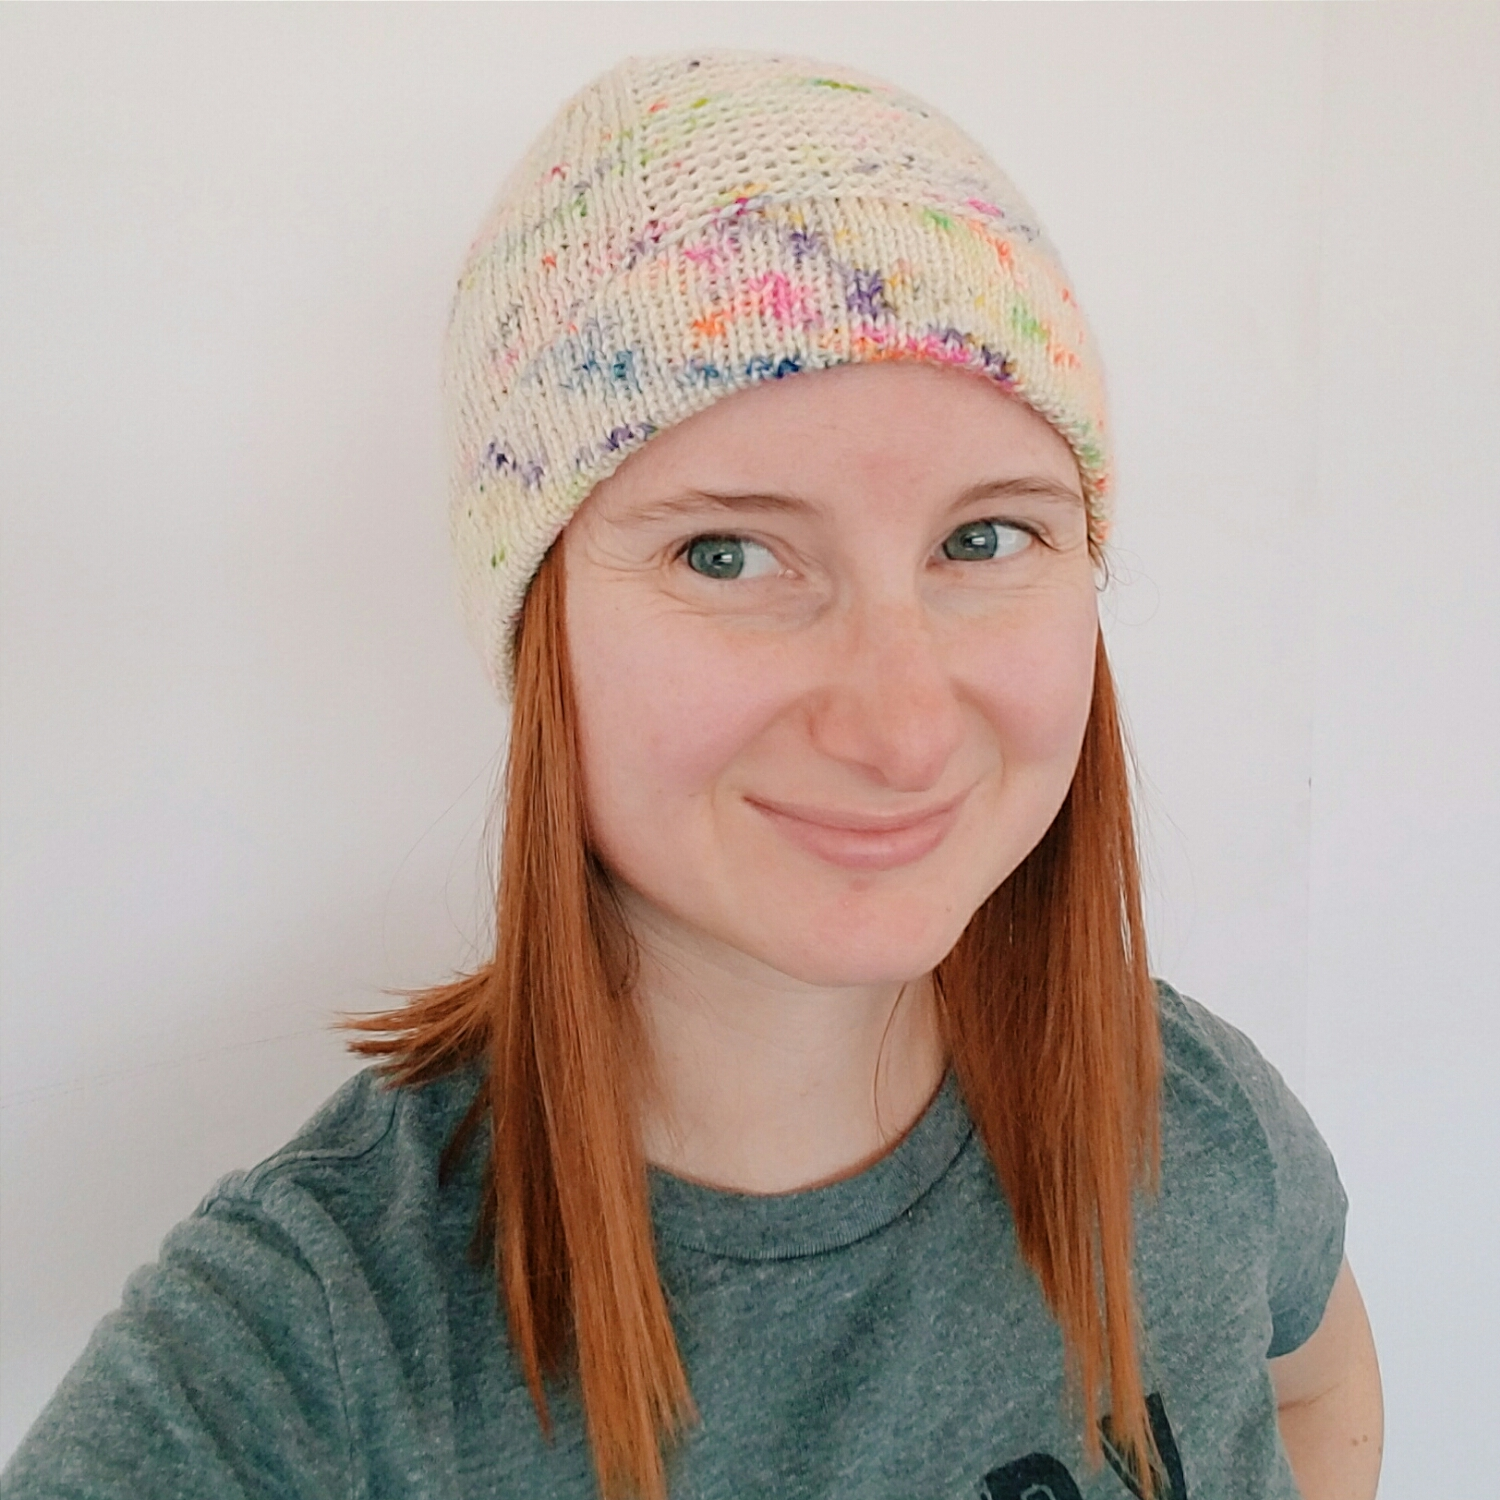 New backpacking hat finished, just in time for it to be way too hot to try it out!